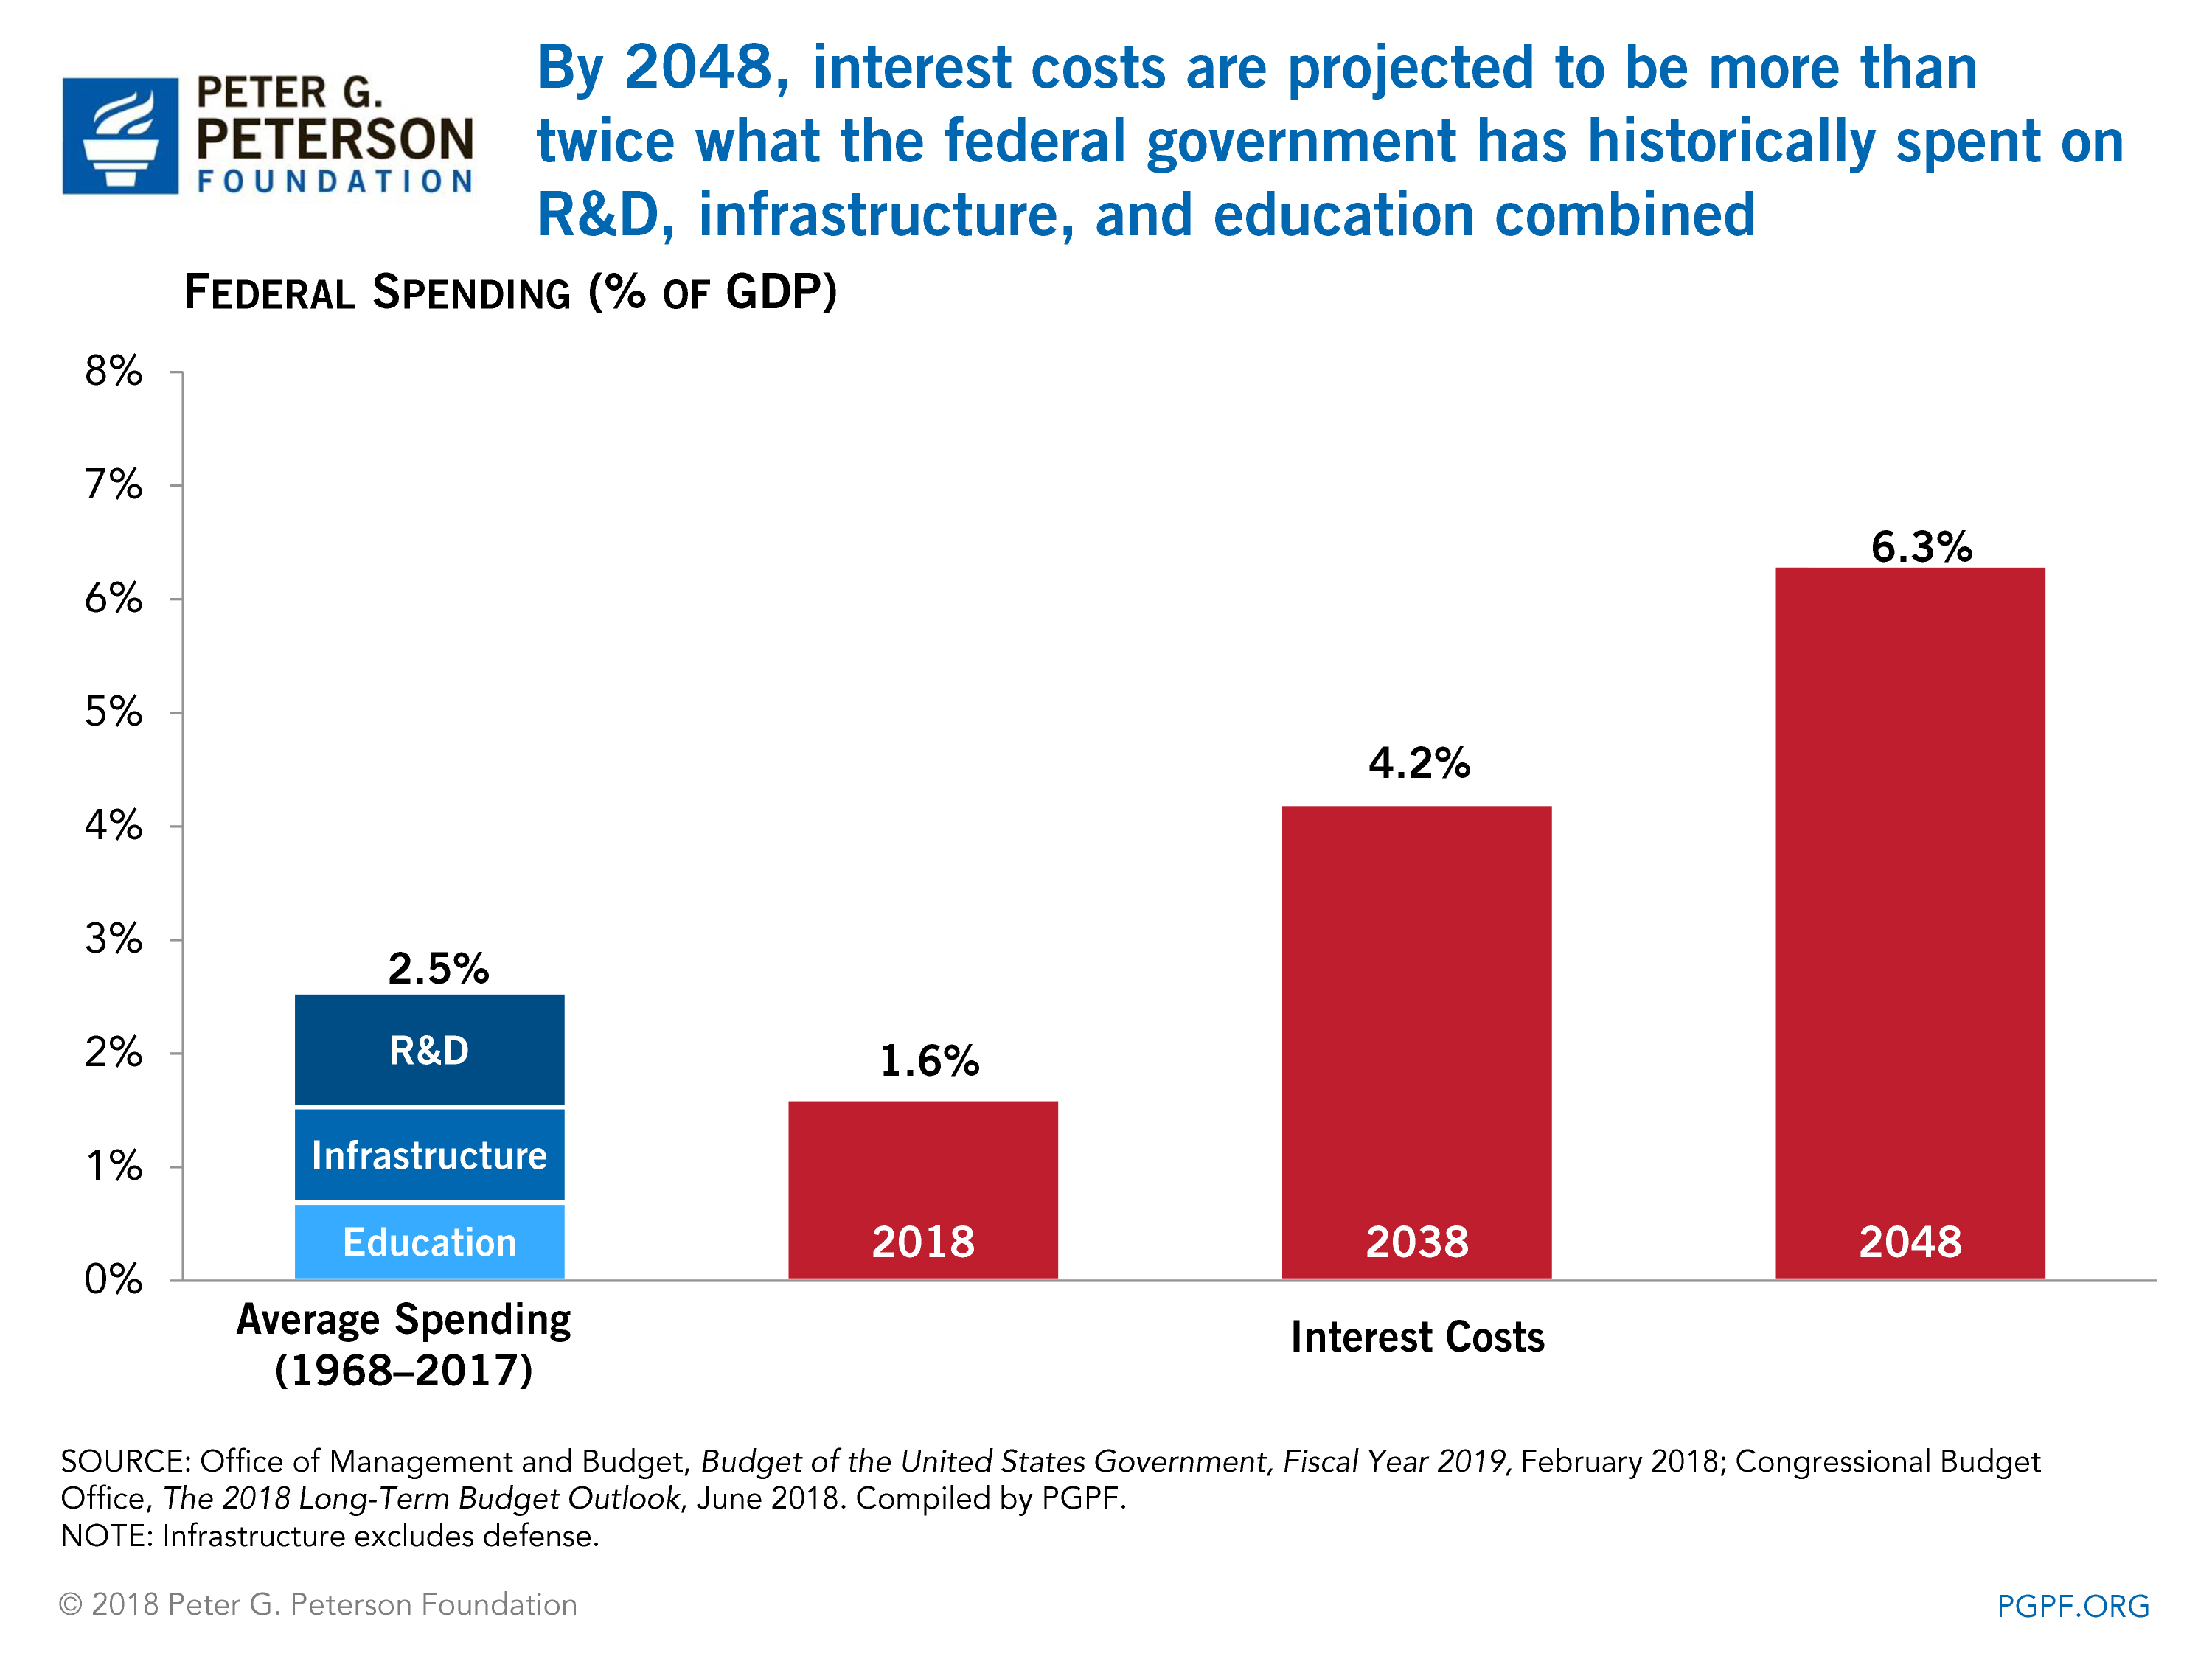 By 2048, interest costs are projected to be more than twice what the federal government has historically spent on R&D, infrastructure, and education combined